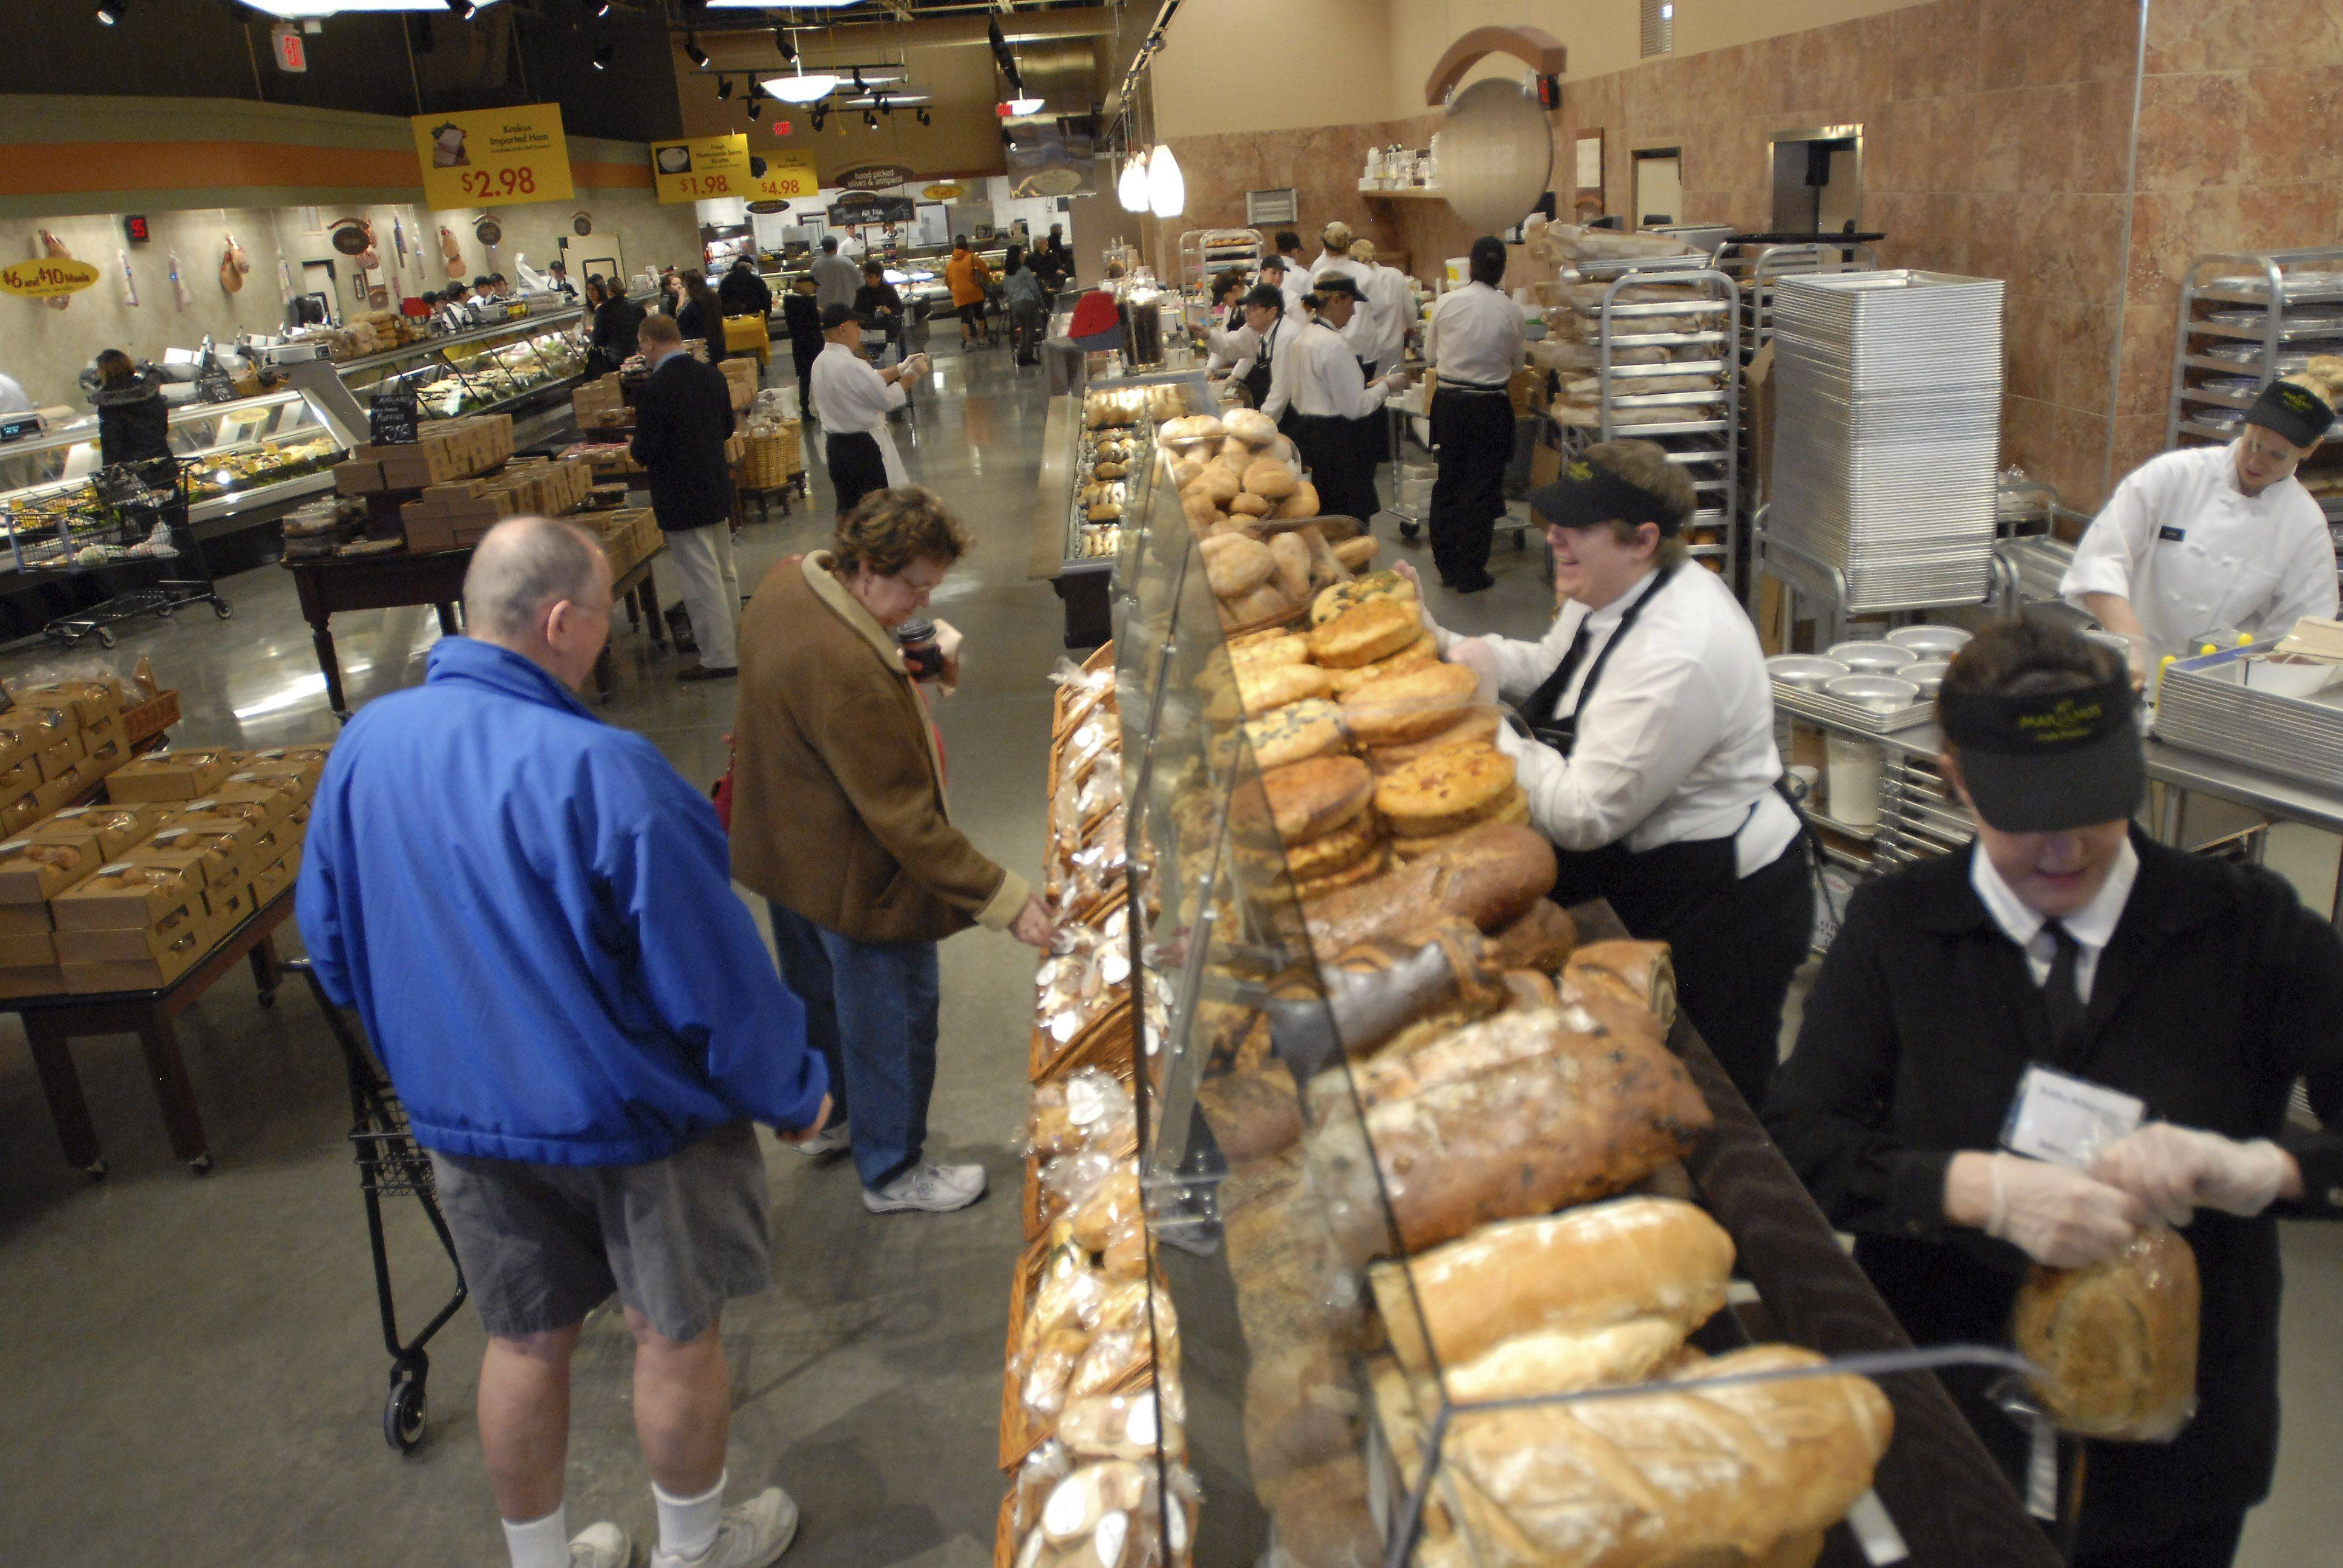 Shoppers check out the bakery during the grand opening of Mariano's Fresh Market Tuesday in Palatine. The Palatine location is the third to open in the Northwest suburbs, following the Arlington Heights and Vernon Hills stores.